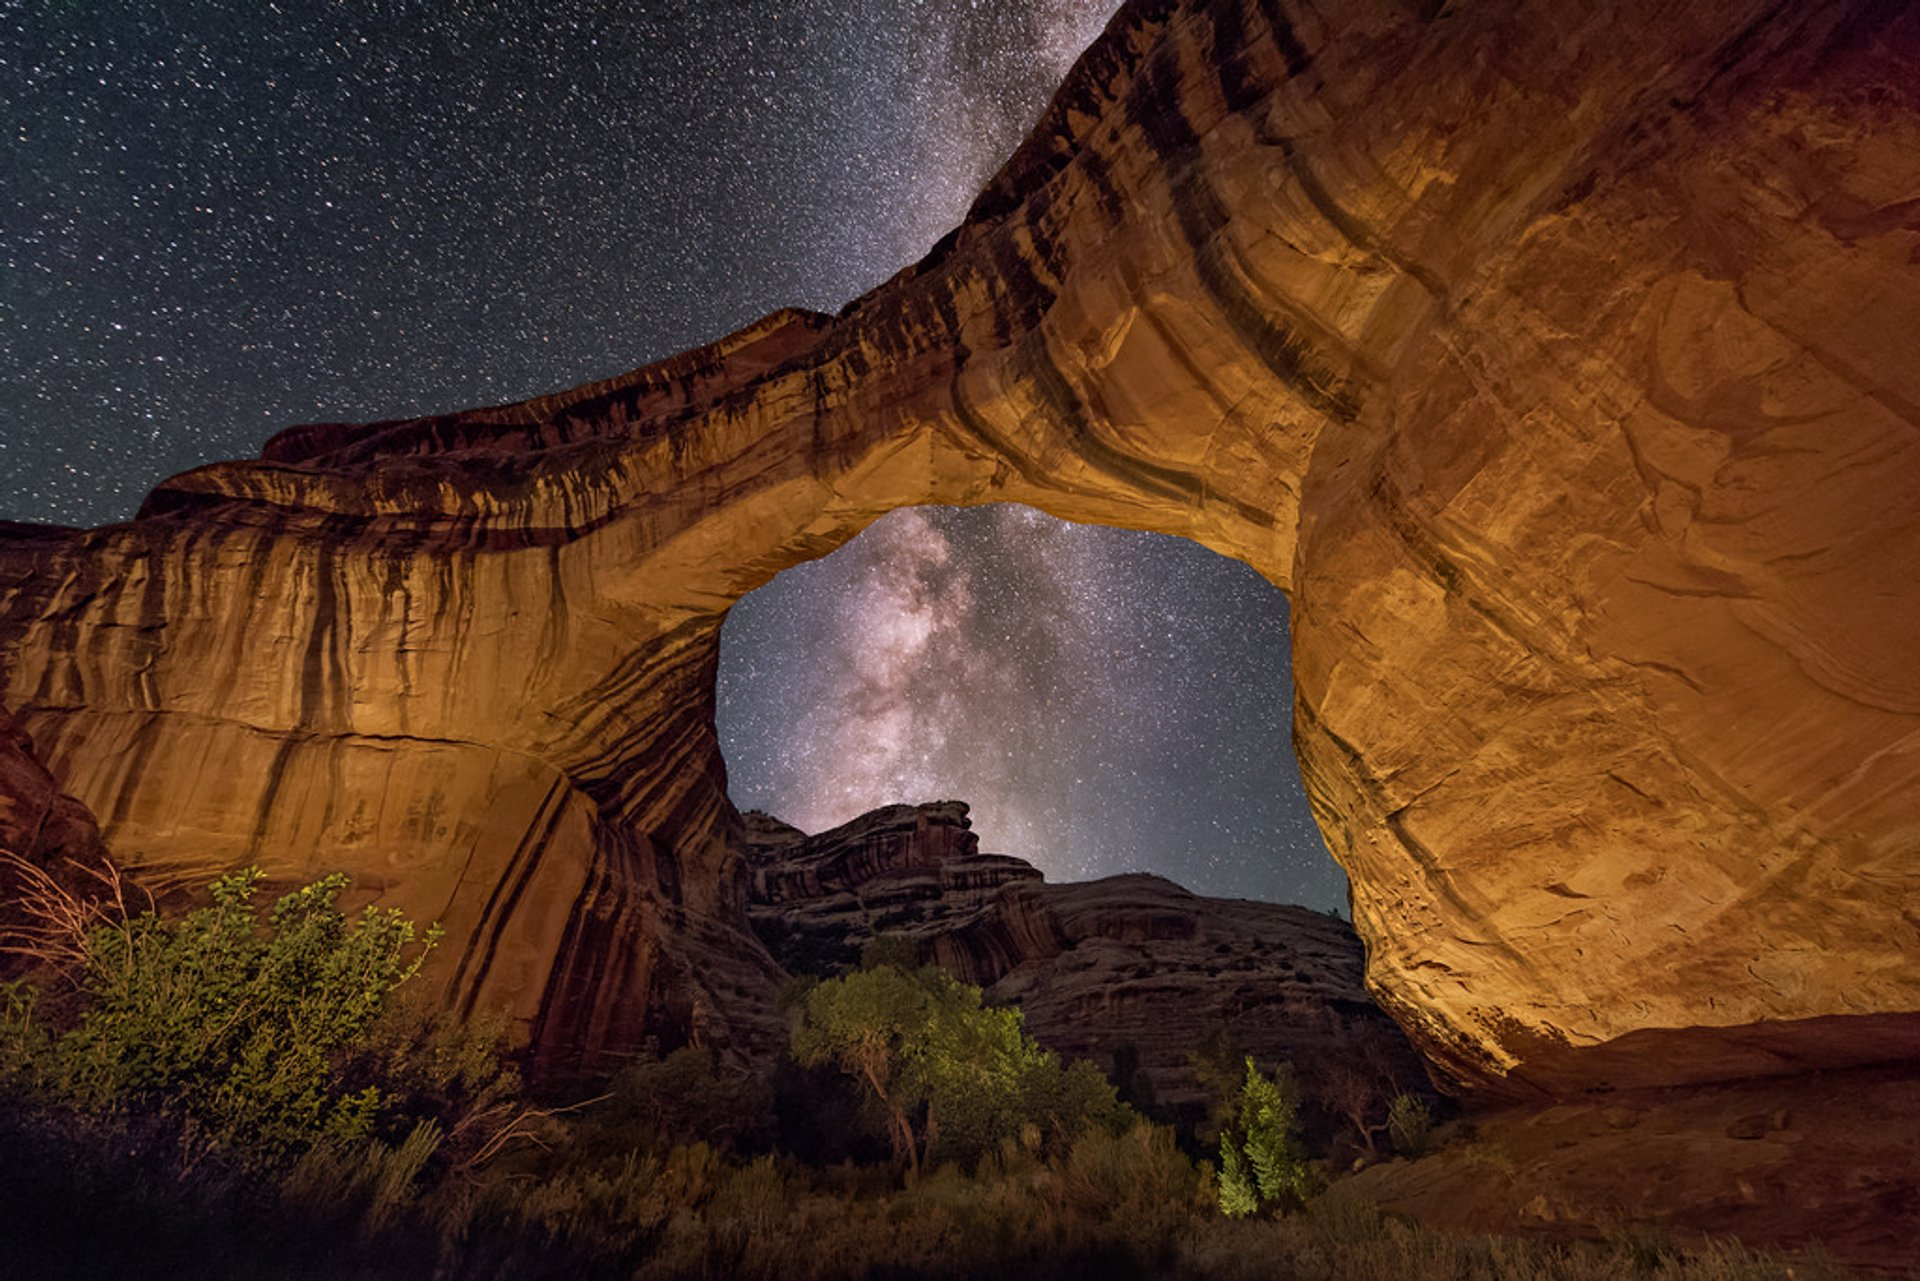 Best time for Stargazing in Utah 2019 - Best Season & Map